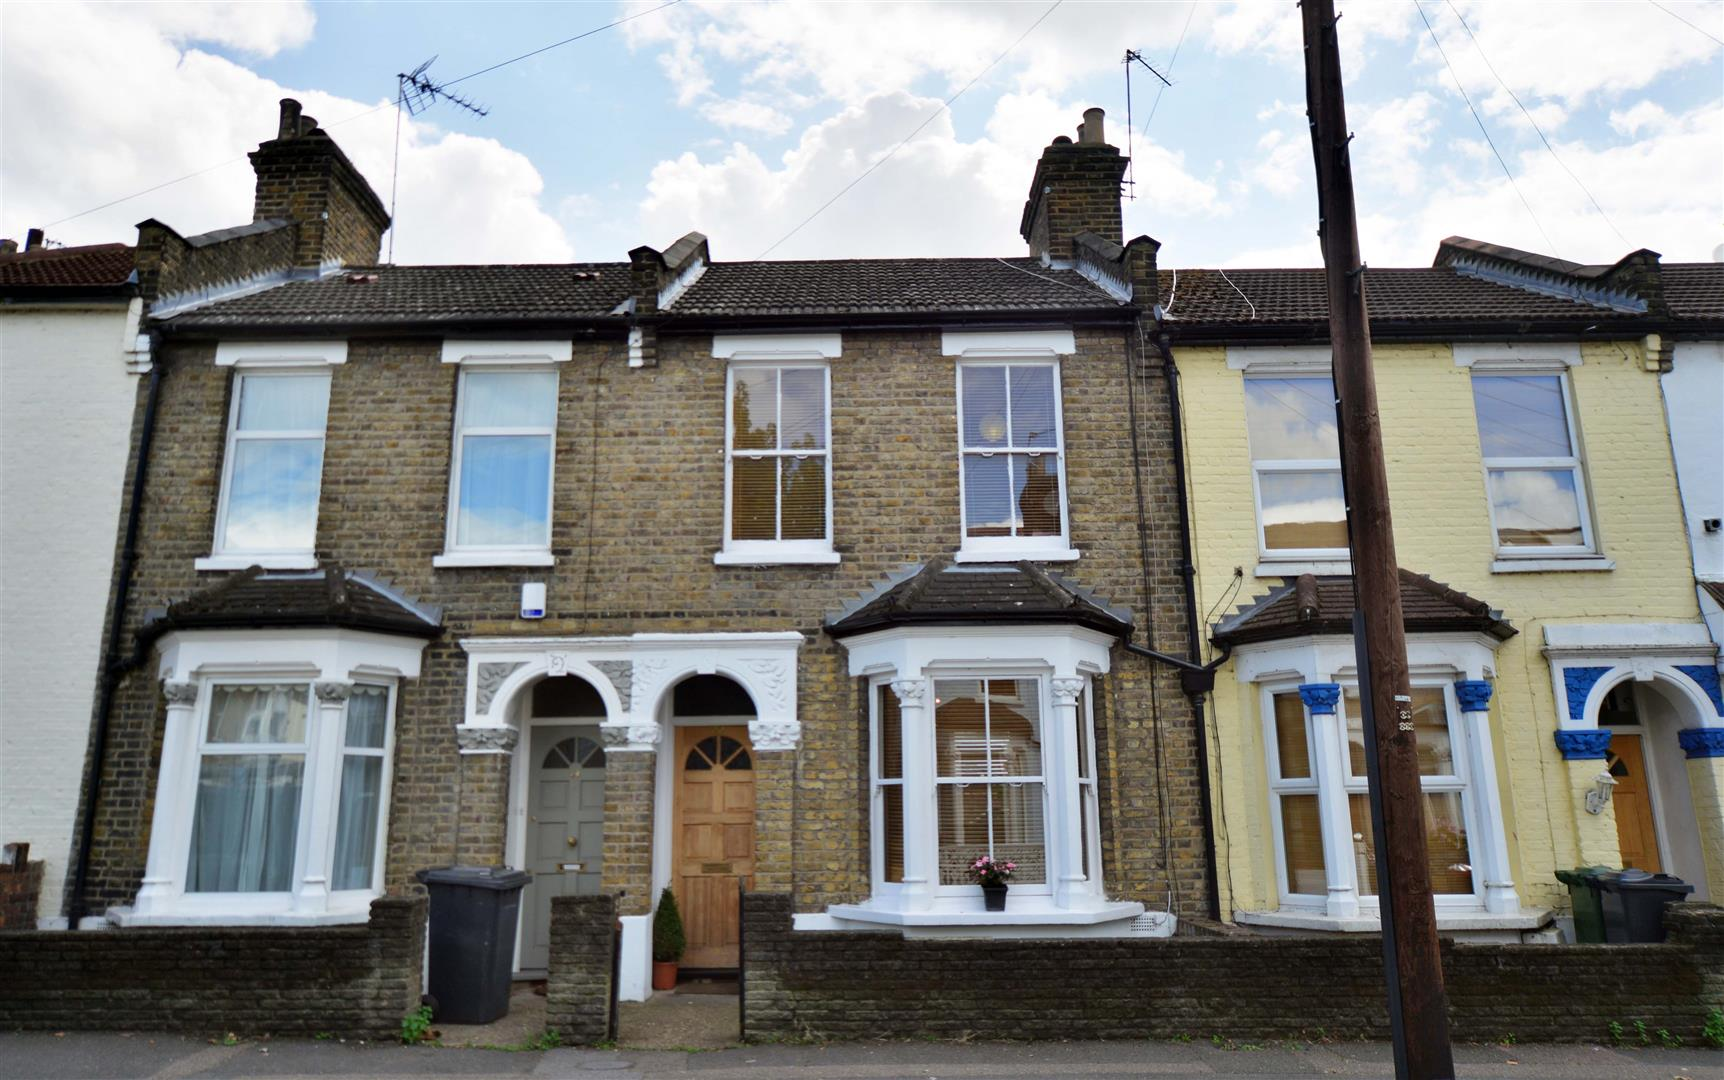 3 Bedroom House – Forster Road, Walthamstow